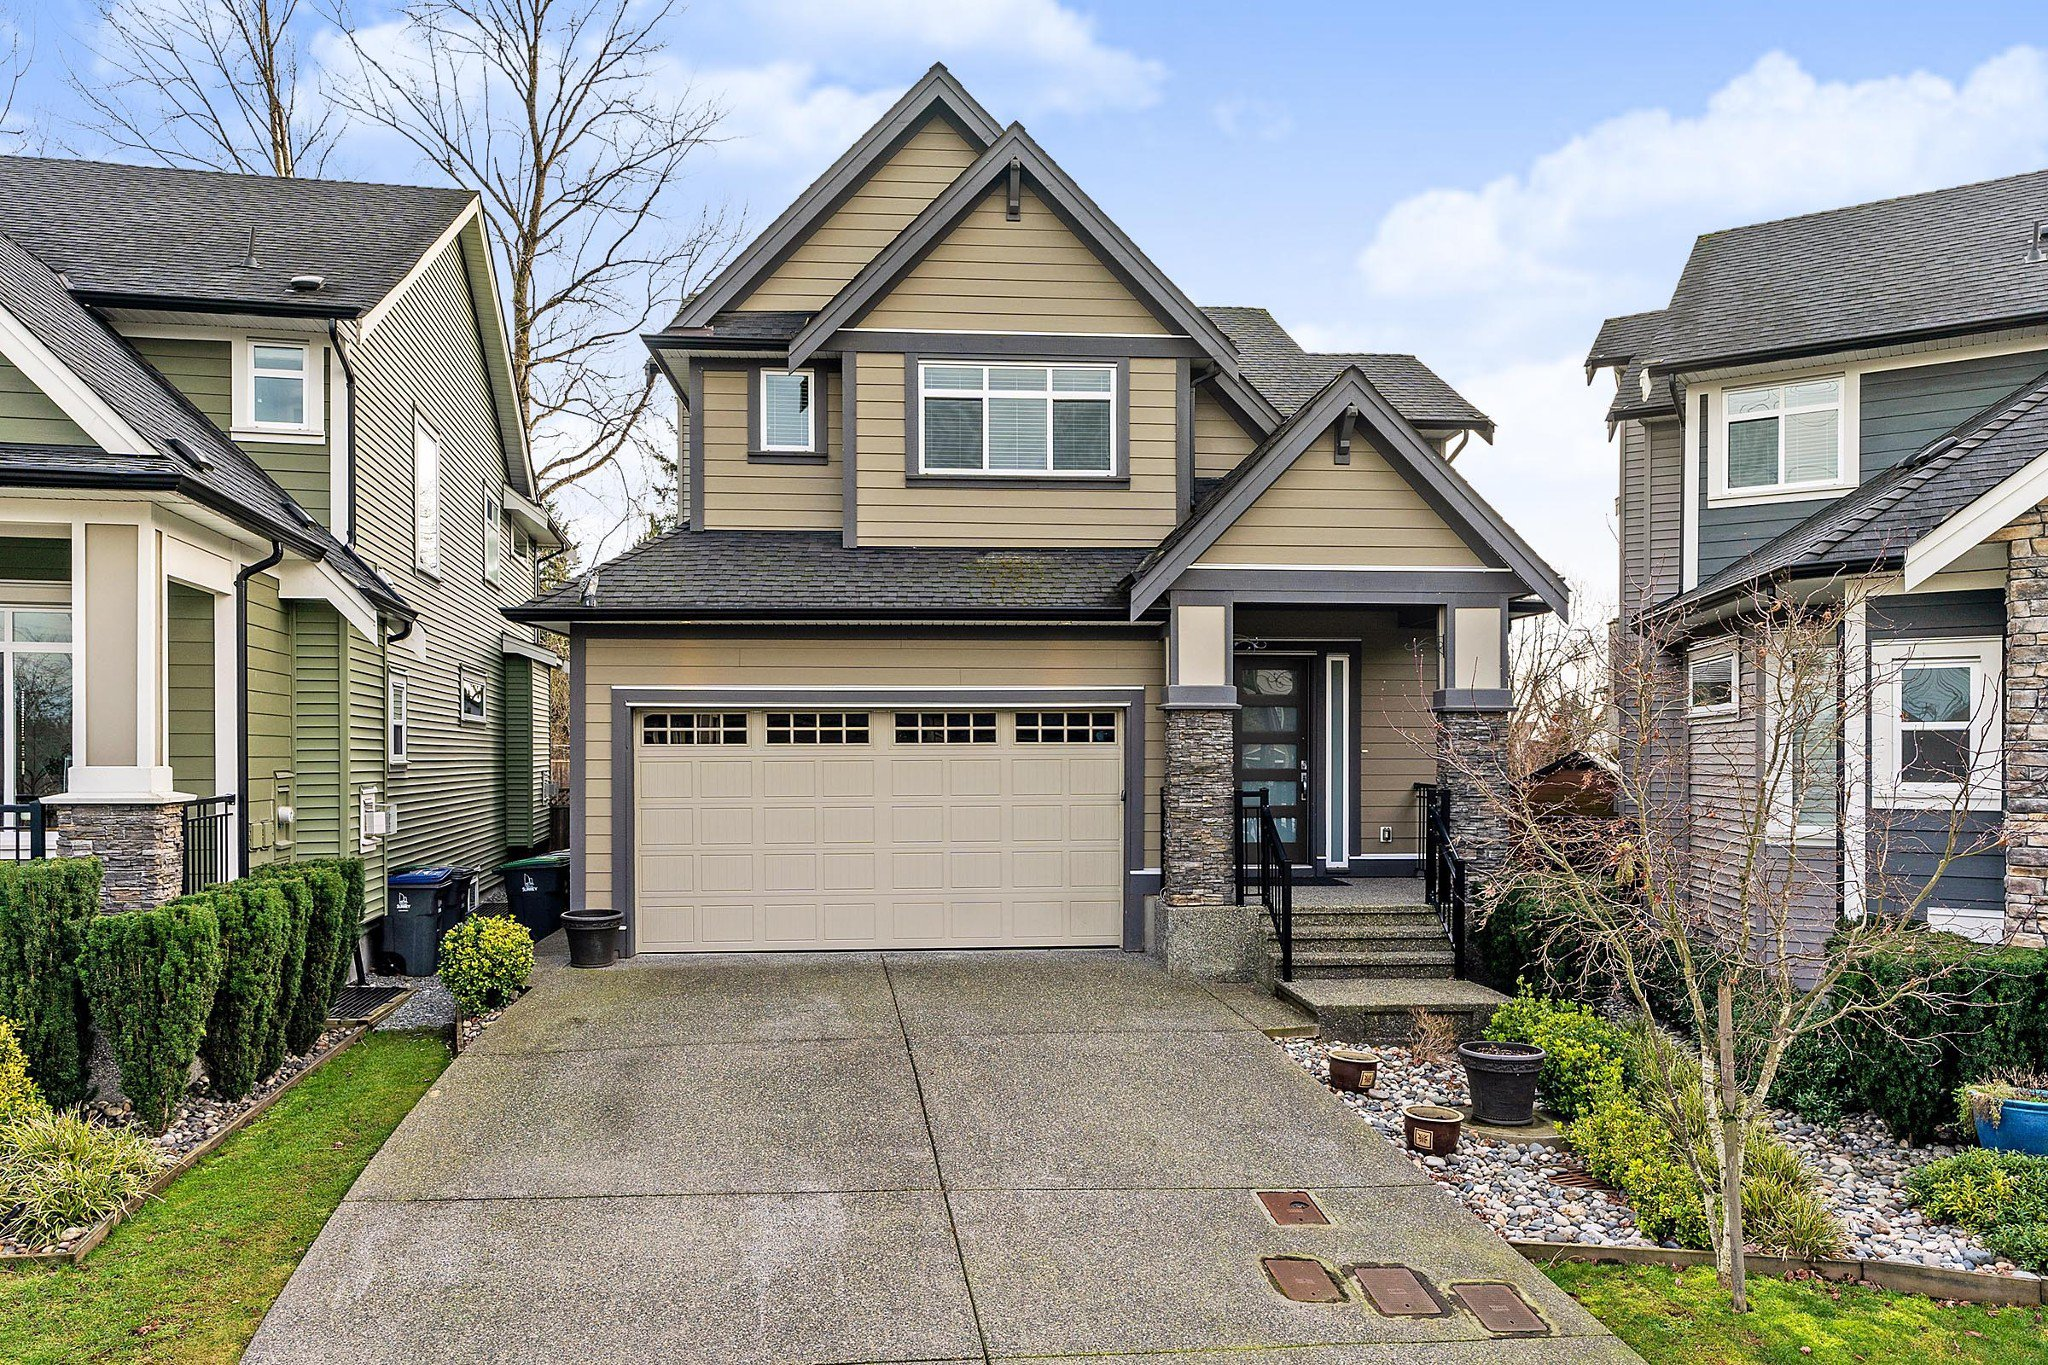 Main Photo: 18472 59 Avenue in Surrey: Cloverdale BC House for sale (Cloverdale)  : MLS®# R2428033